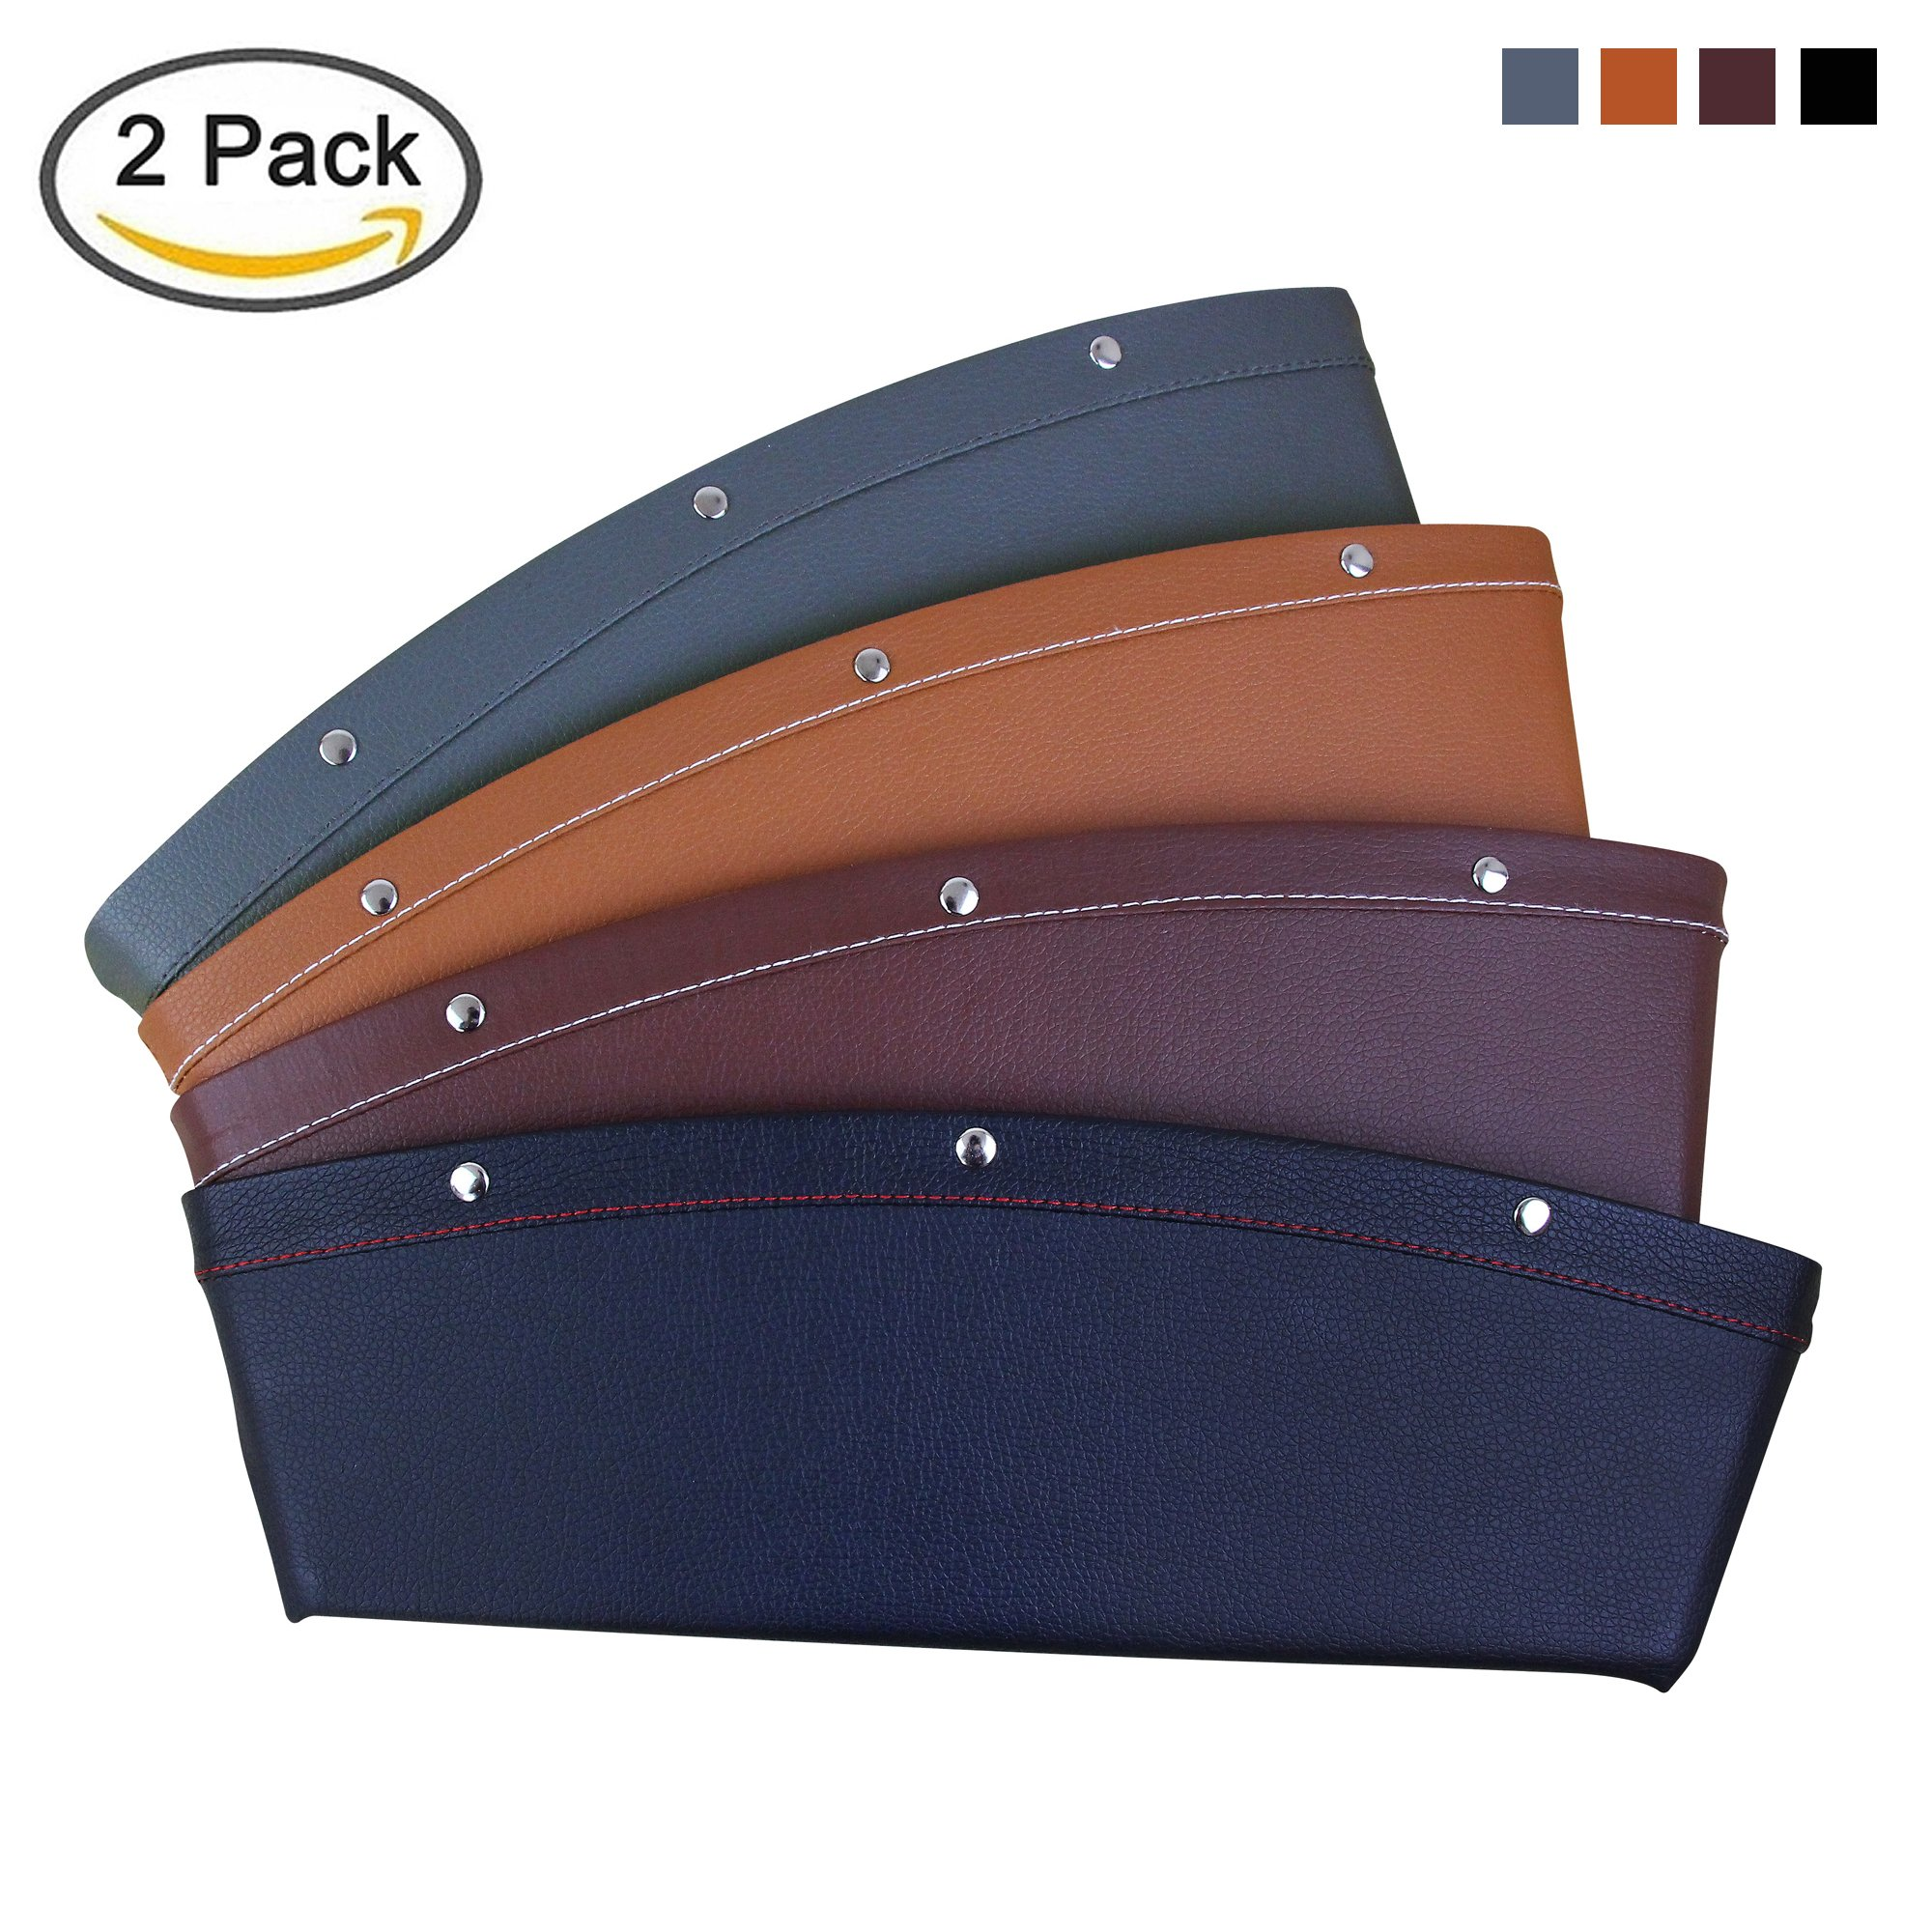 KYC 2 Pack Car Pocket Organizer Seat Side Caddy Console Car Catcher Gap Filler PU Leather 4 Color Interior Car Accessories - GRAY COLOR